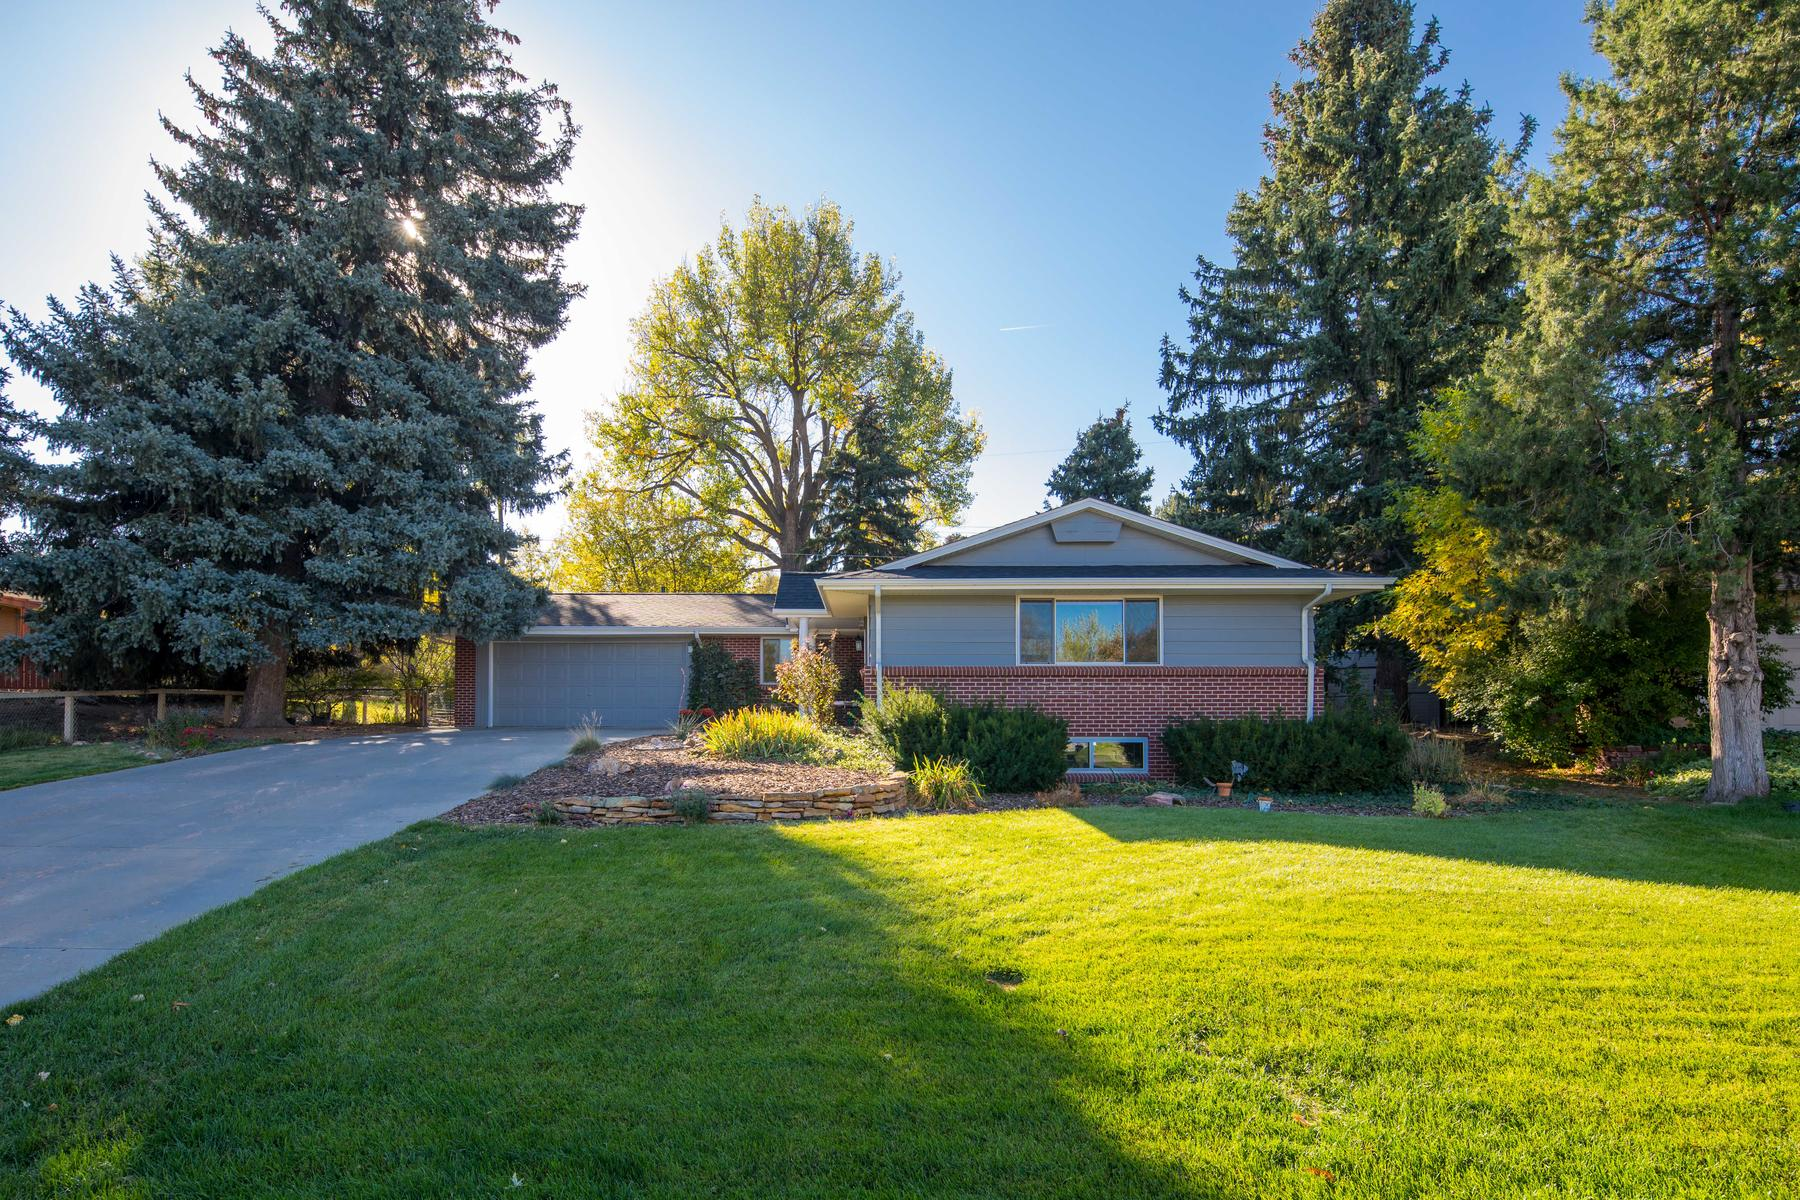 Property for Active at Beautiful Mid Century Ranch In Applewood Knolls On A Quiet Street 11320 W 25th Pl Lakewood, Colorado 80215 United States